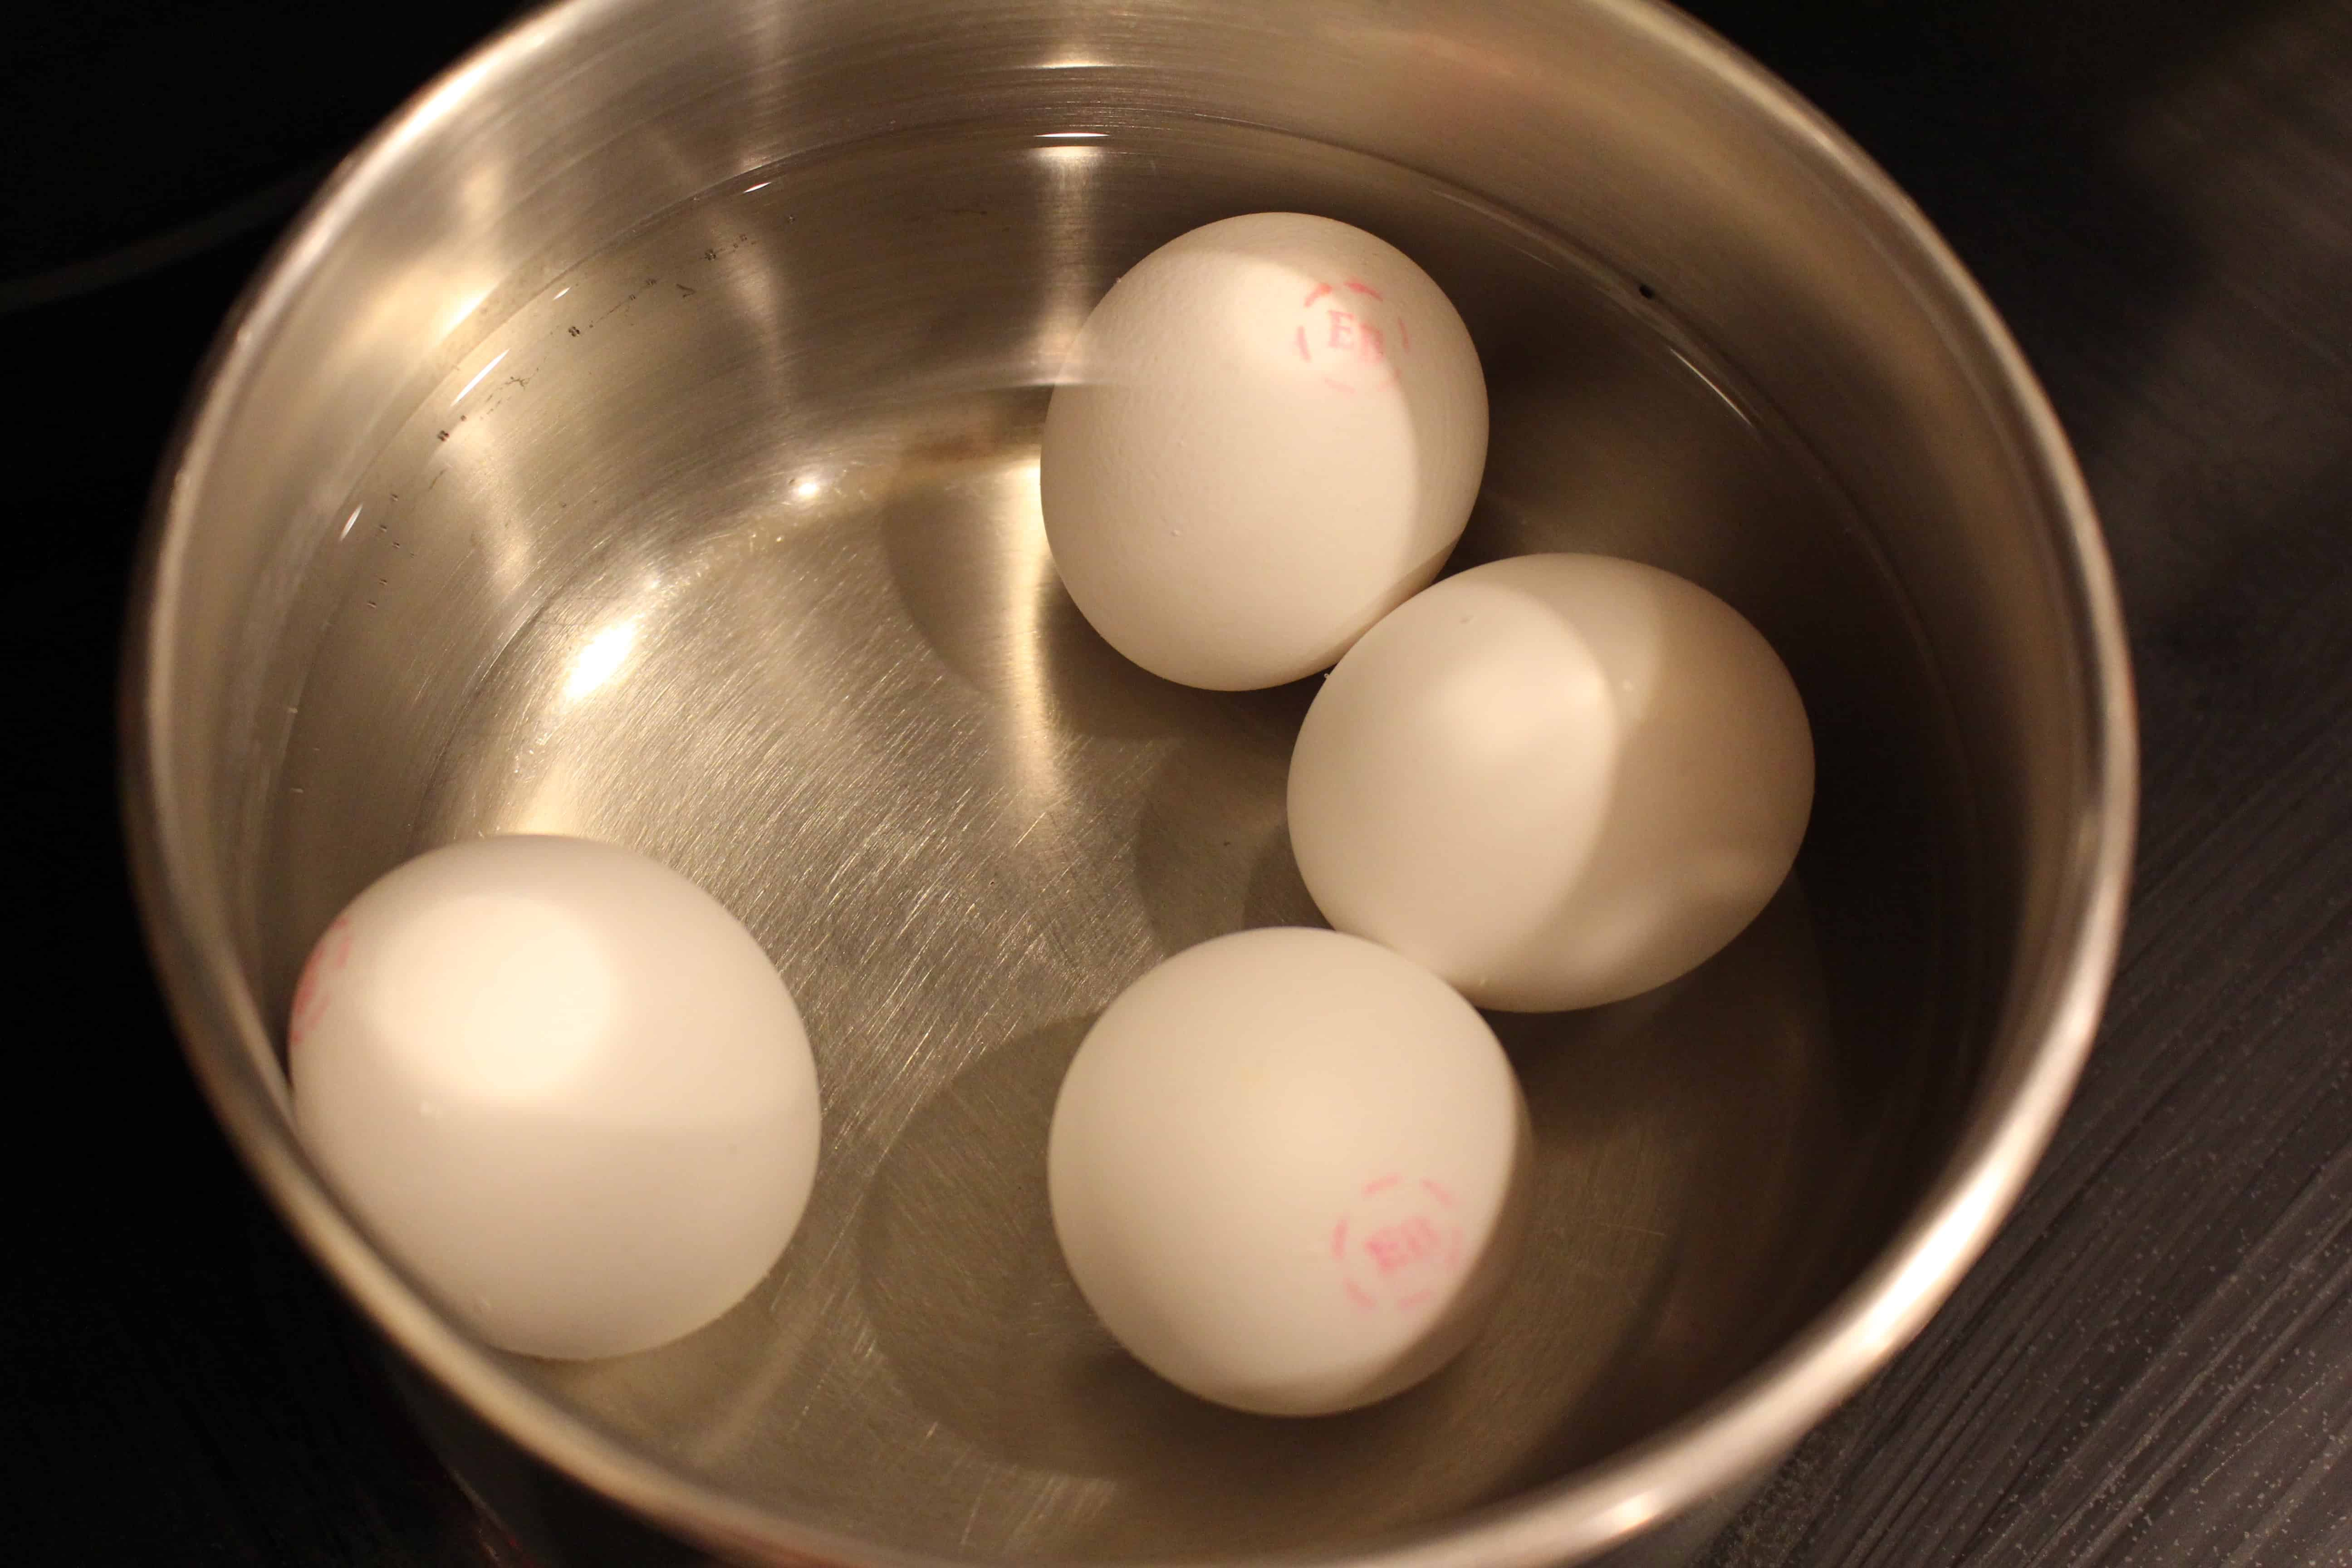 Step 1: How to make hard boiled eggs